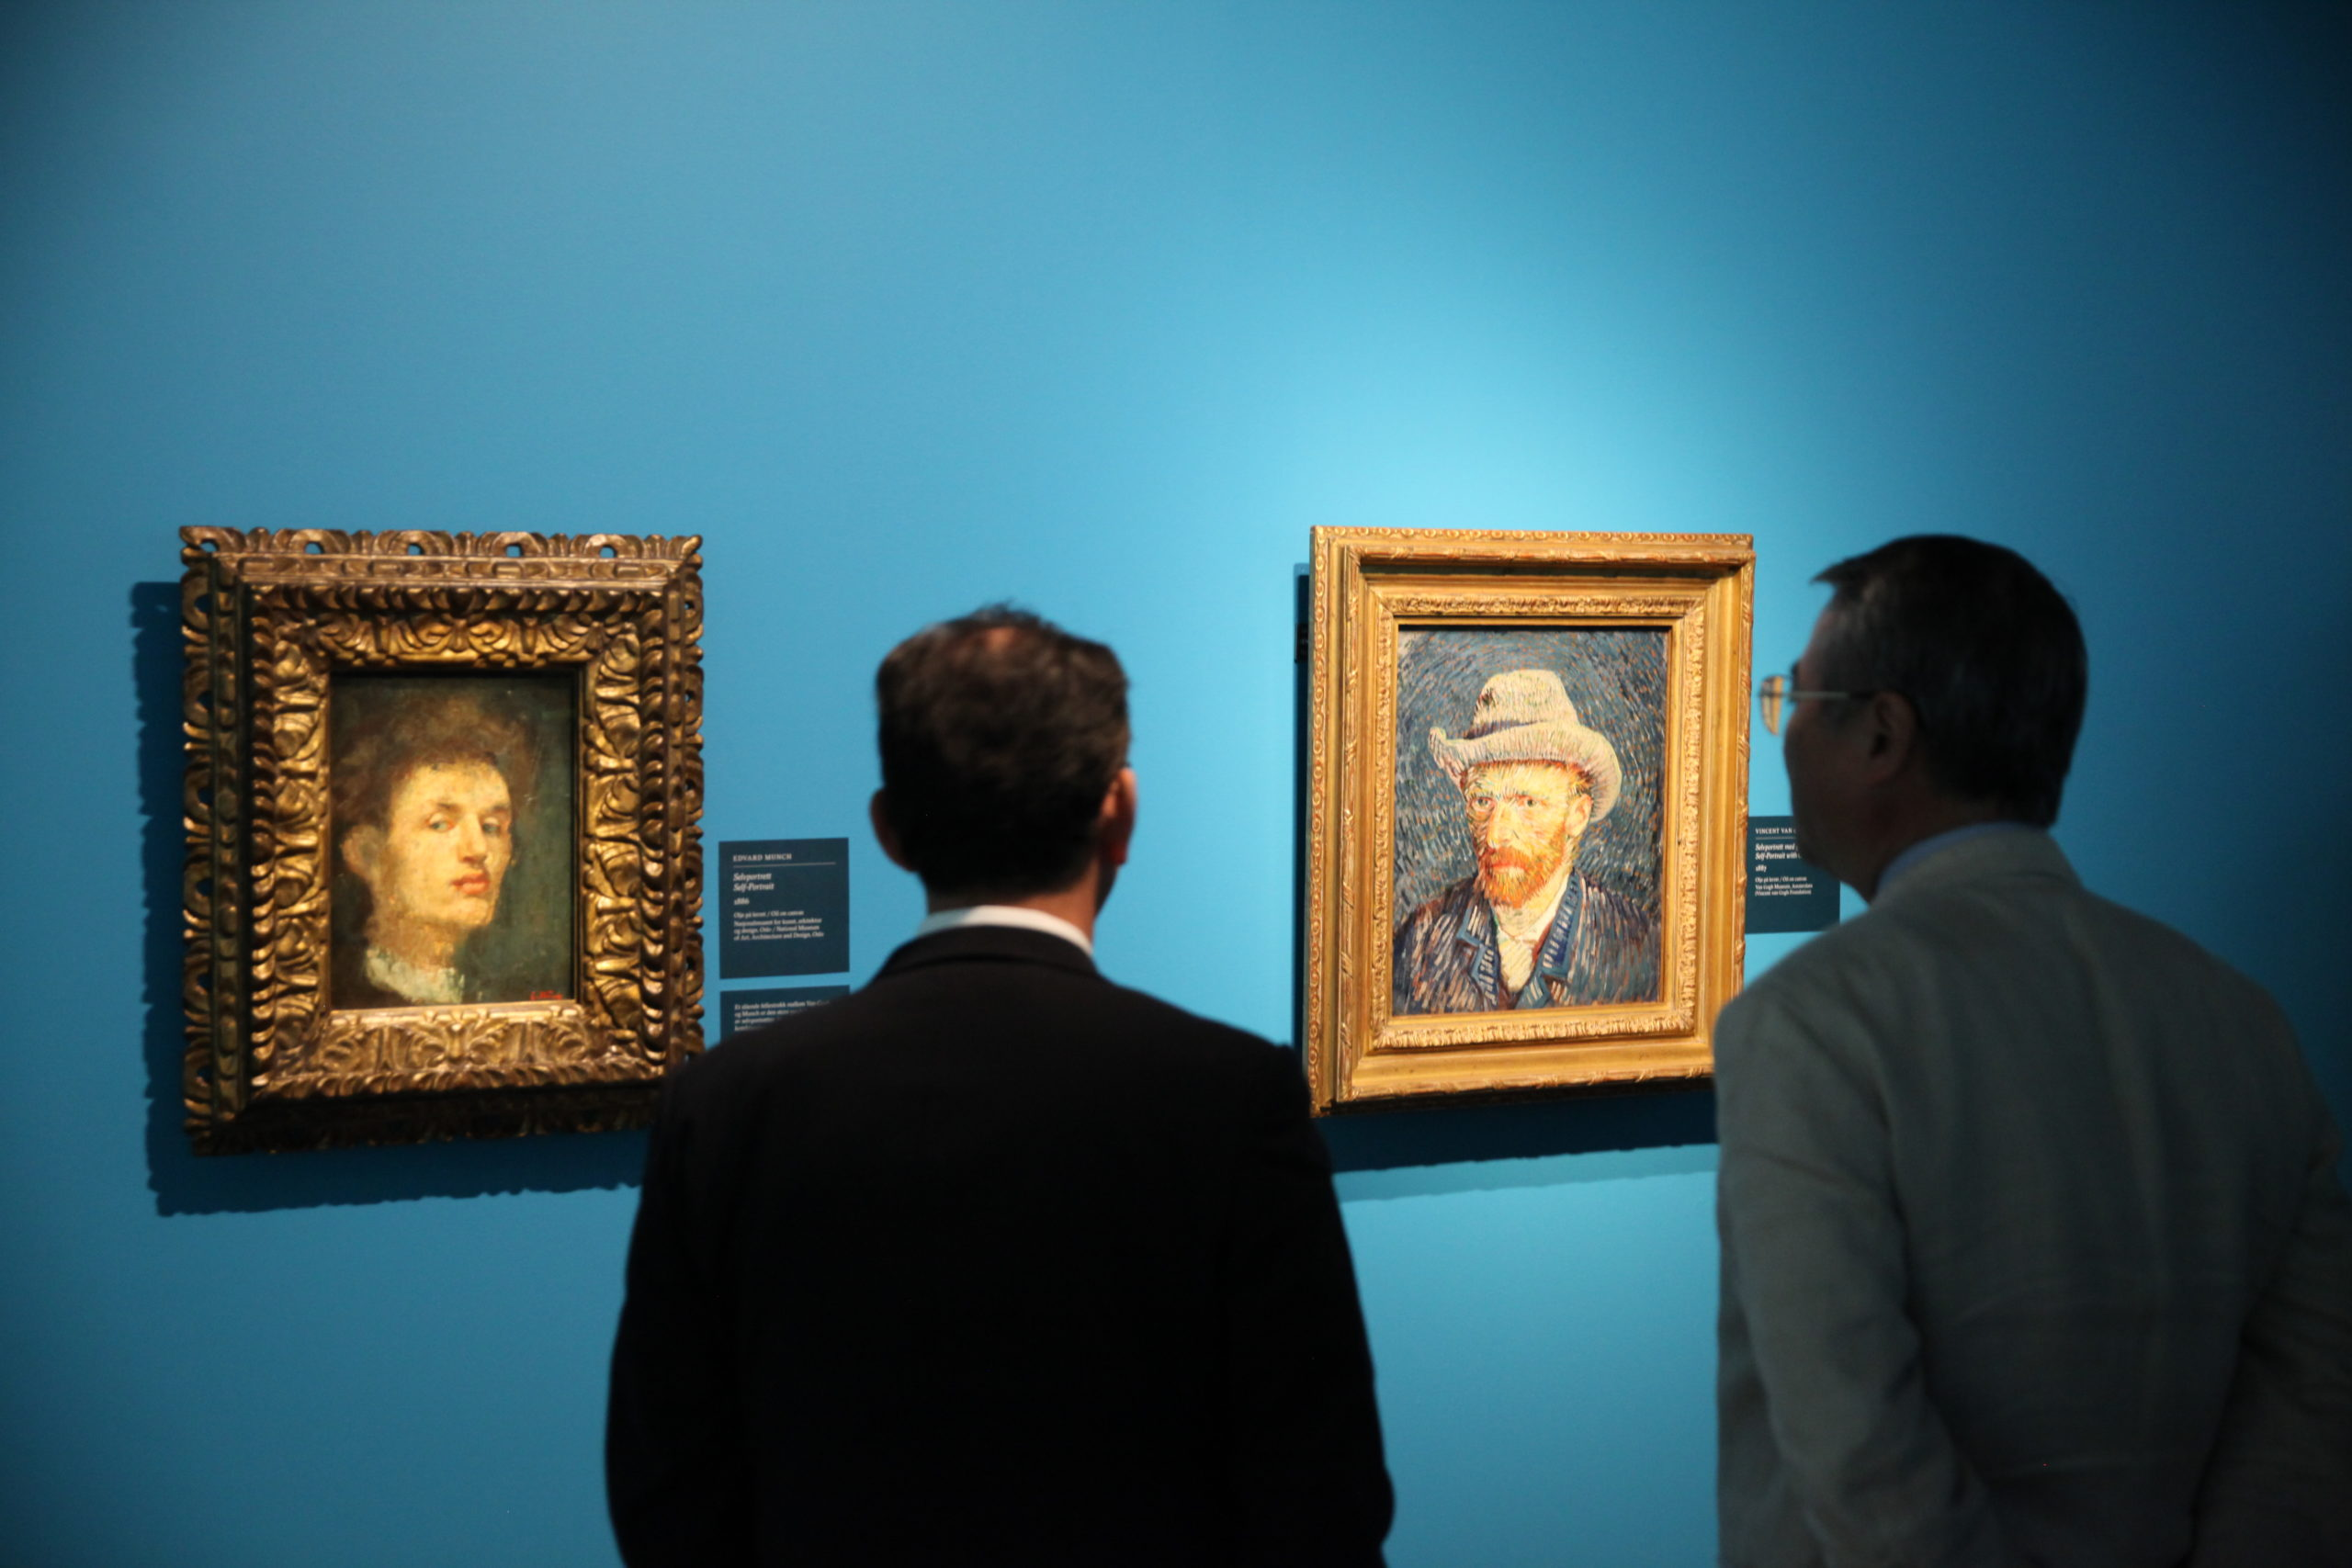 Visitors looking at Munch and van Gogh self portraits in Munchmuseet, 2015